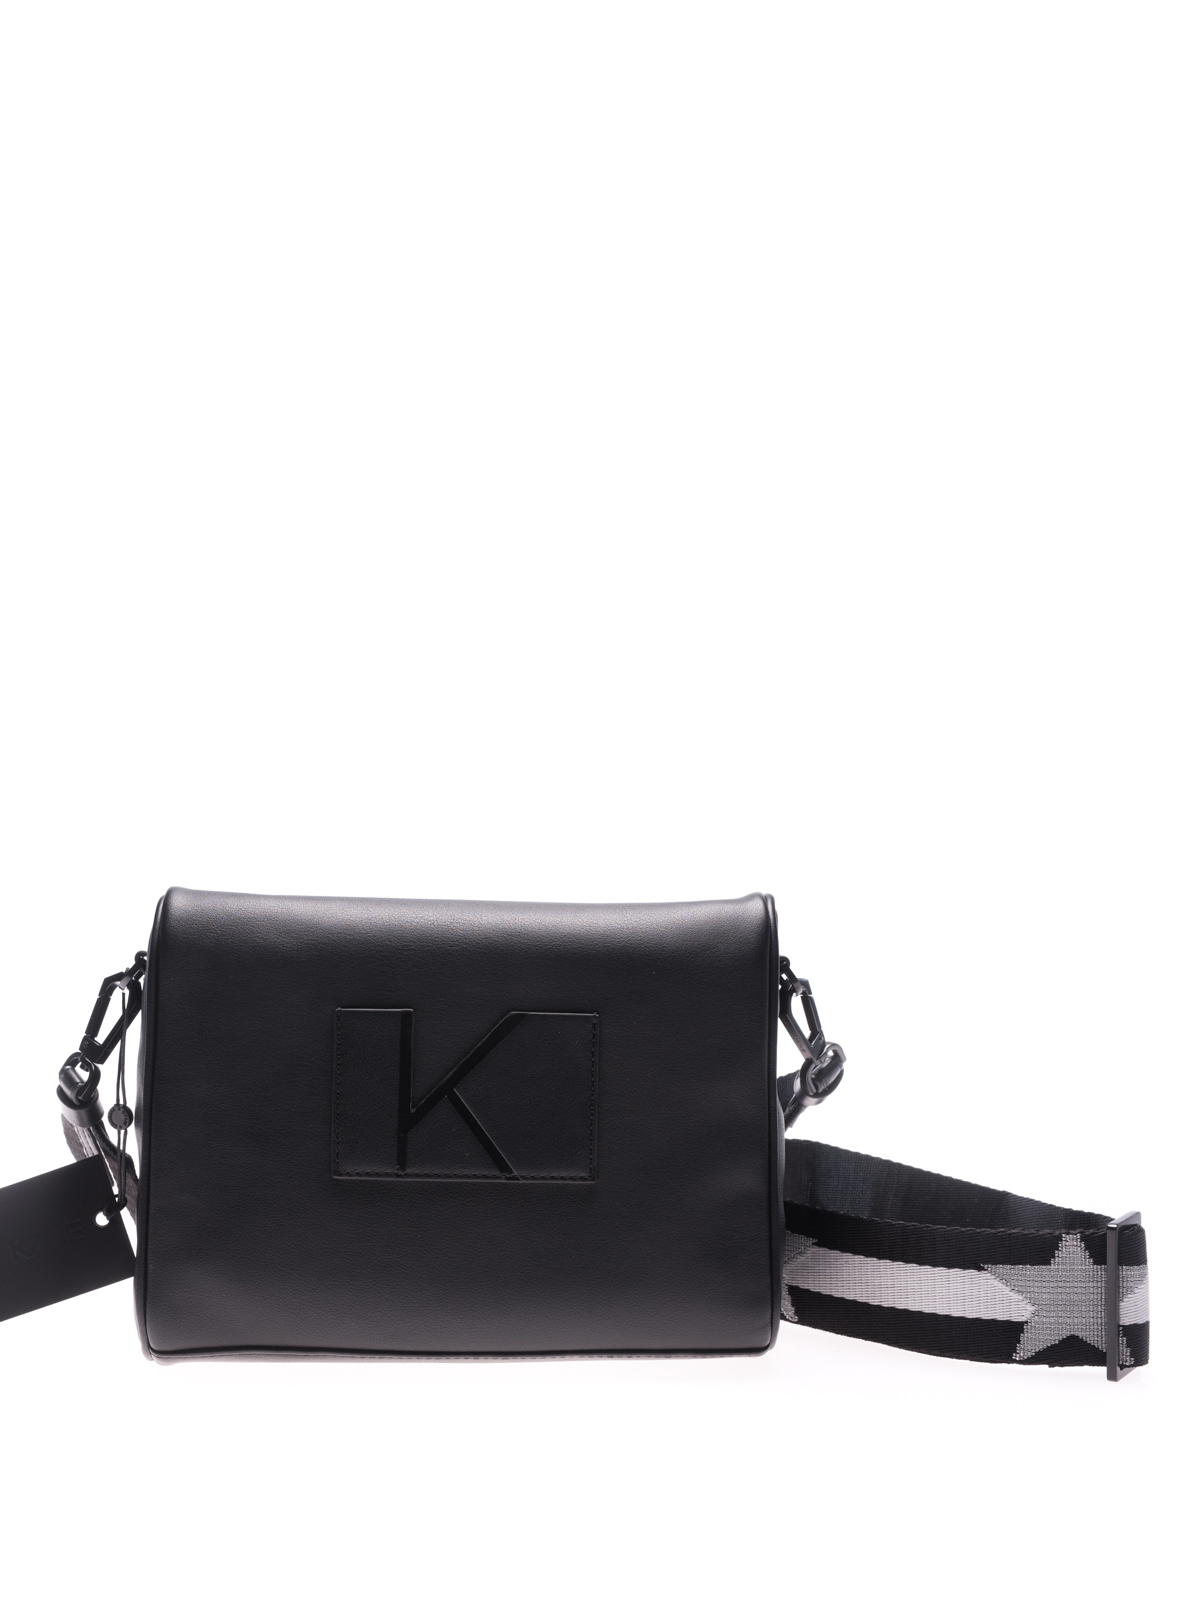 Kendall + Kylie Faux leather cross body bag AkkREFn